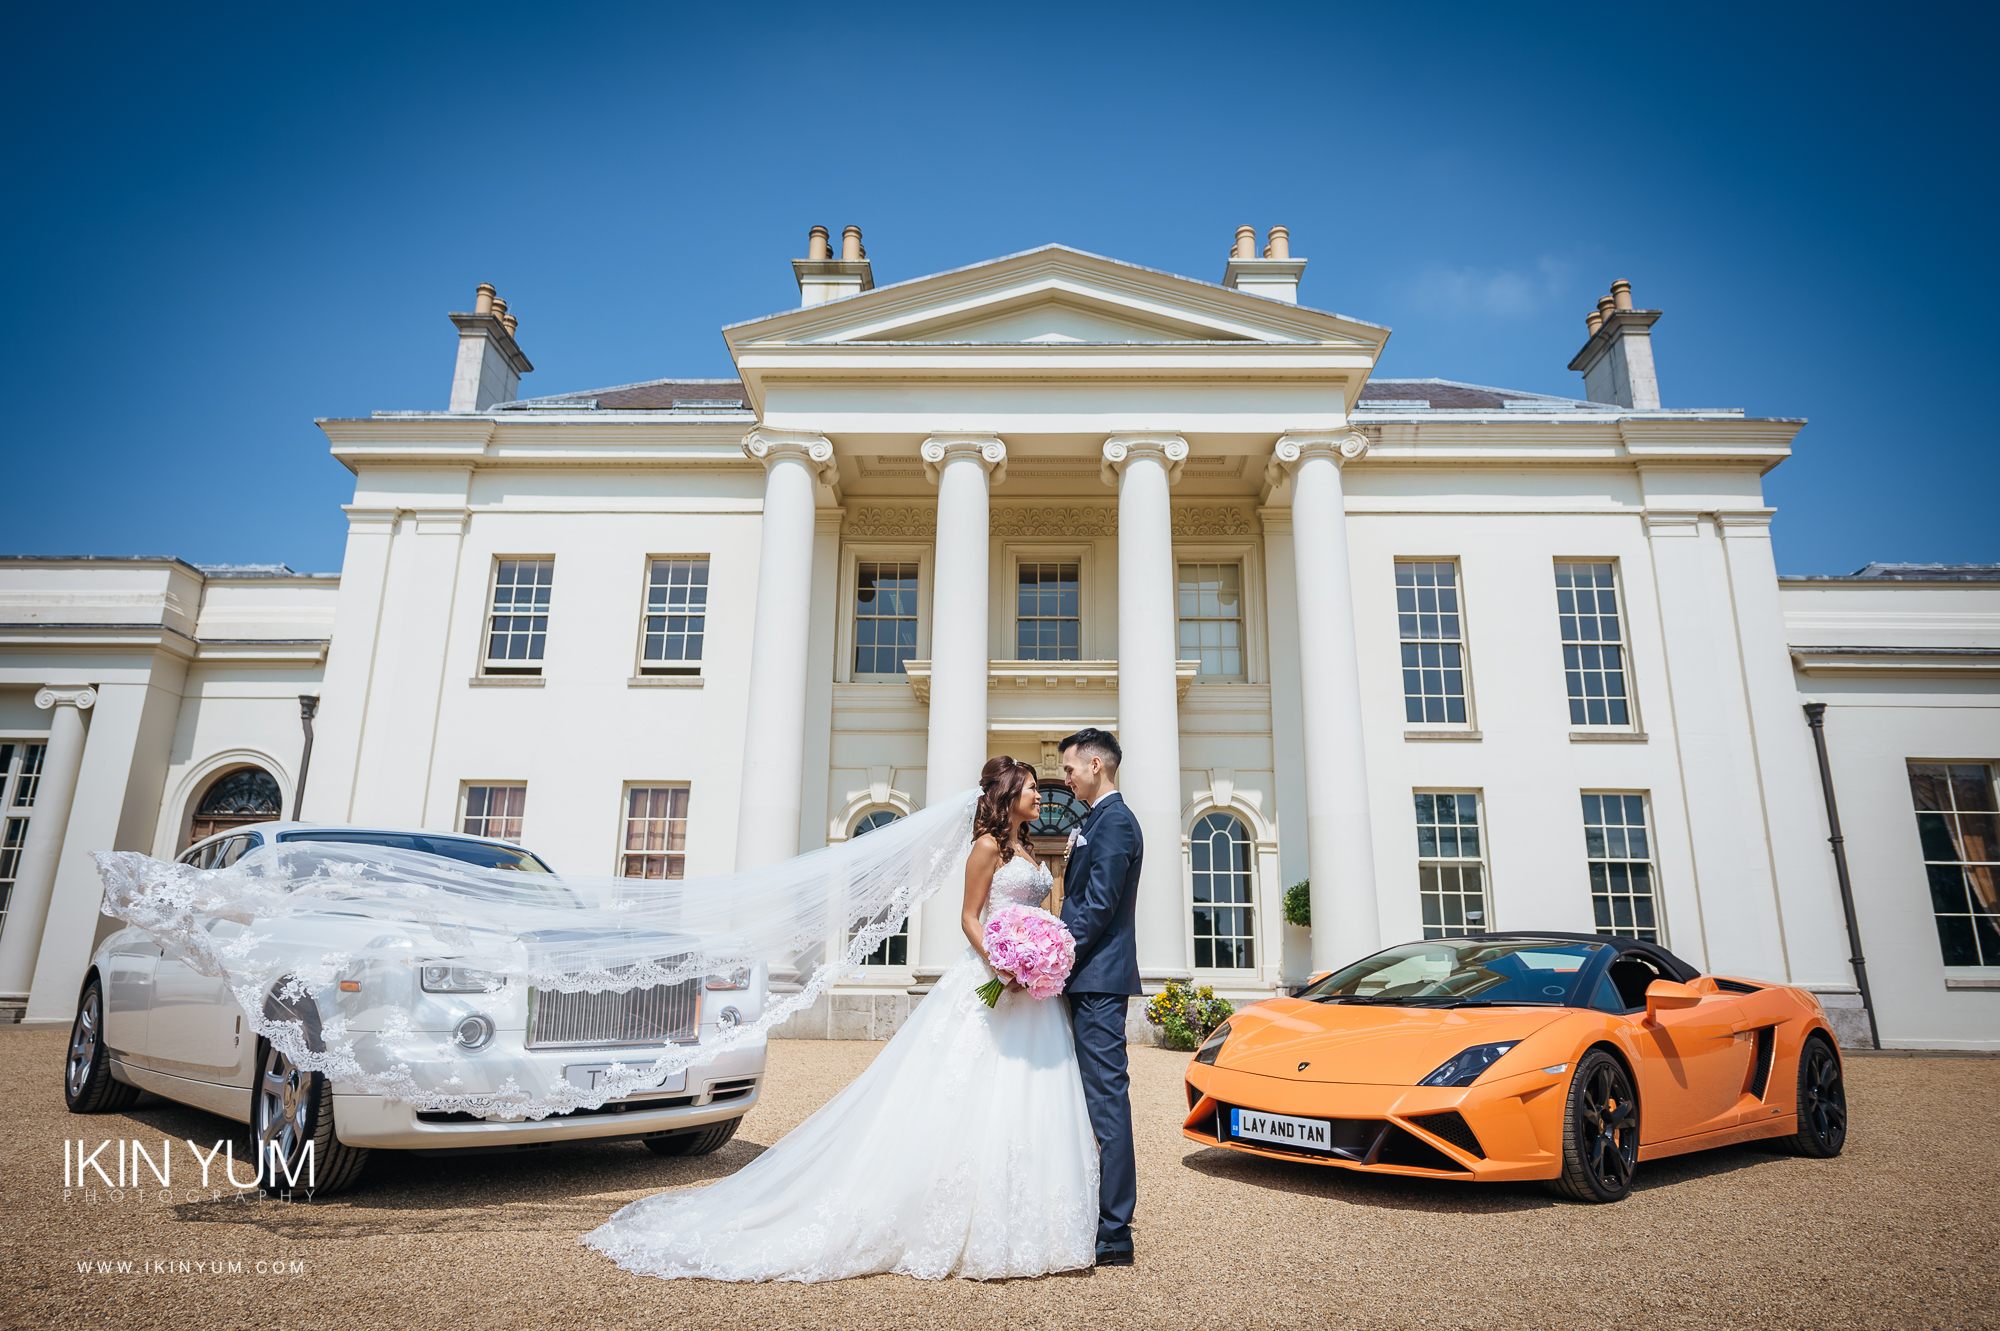 Hylands house Wedding - London - Chinese Wedding Photographer -  英国伦敦 婚礼 摄影